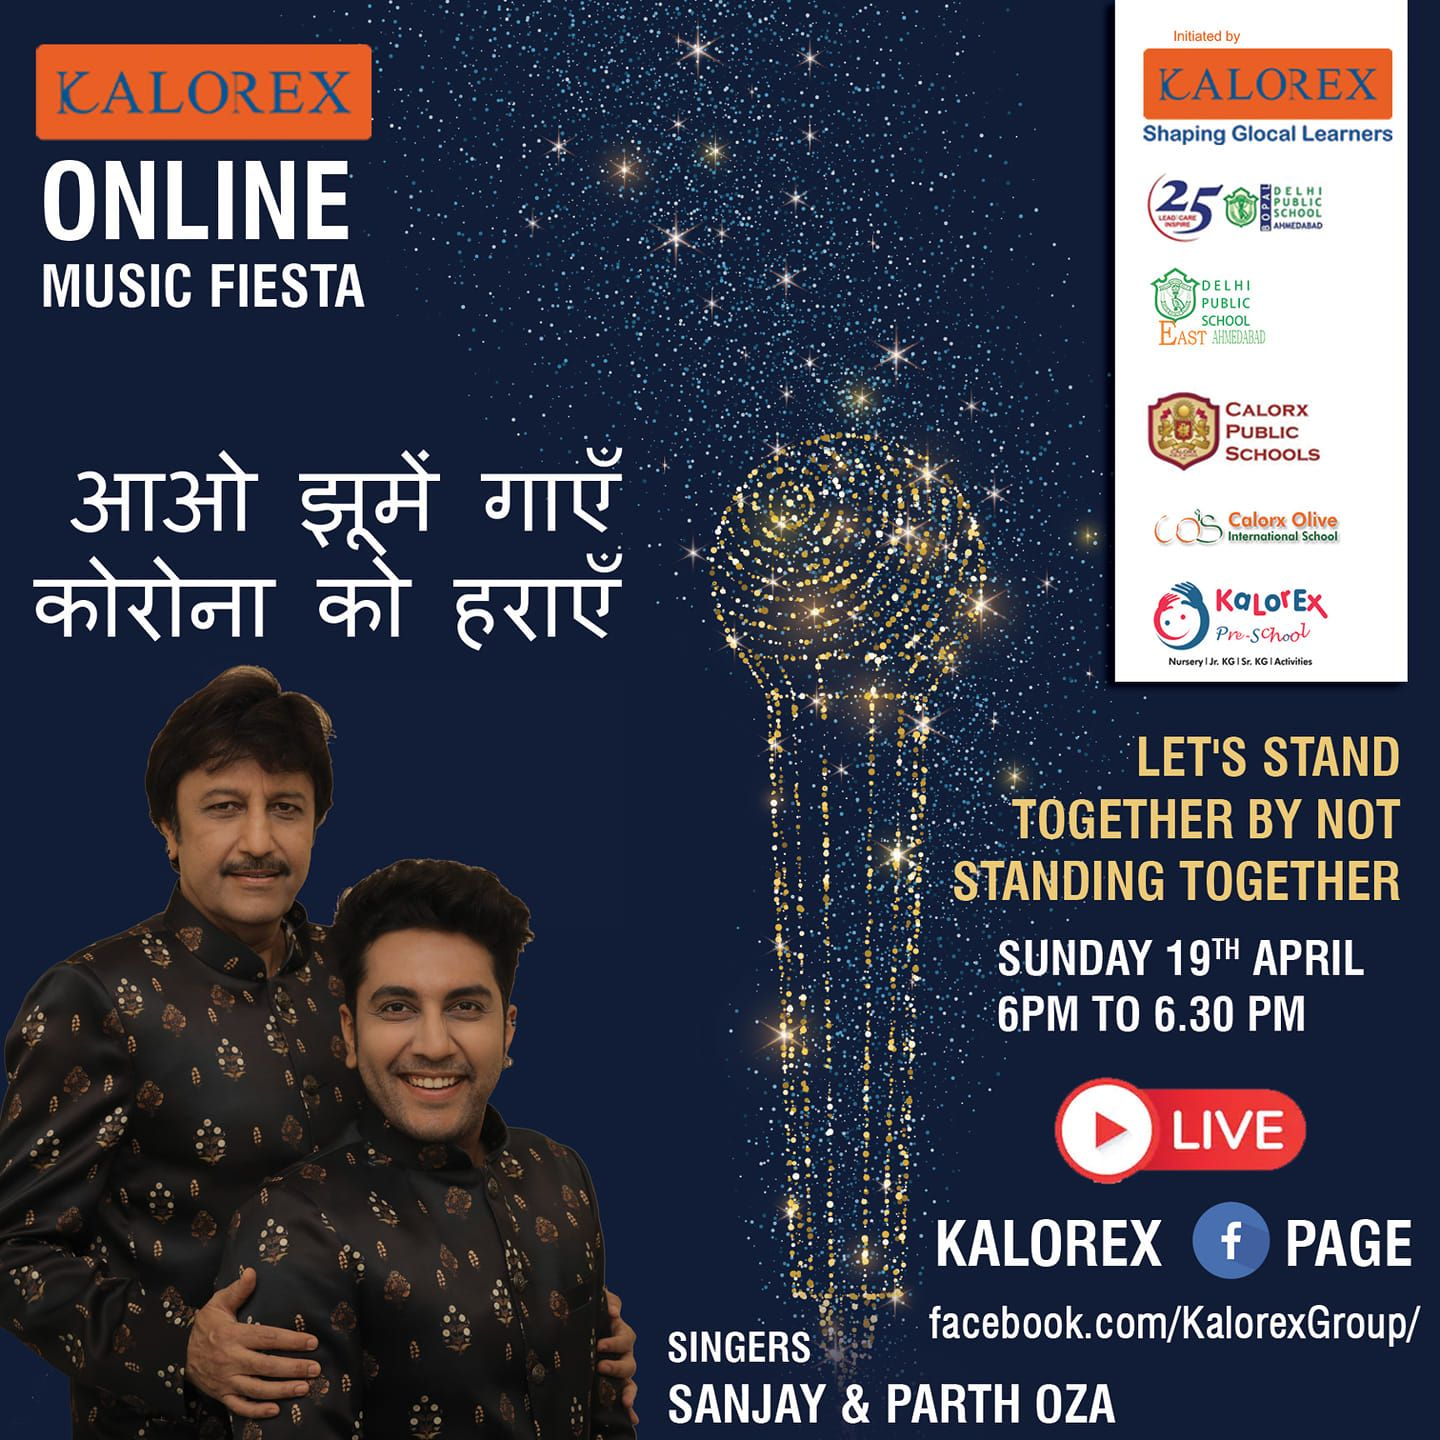 Kalorex Group is going live for Online Music Fiesta on Sunday 19th April at 6 PM to 6:30 PM  Let's Stand Together by Not Standing Together. With Singer Arvind Vagda only on Kalorex Group FB Page, Stay Tune, Stay Safe & Stay at Home.  Delhi Public School - Bopal, Ahmedabad Delhi Public School, East Ahmedabad Calorx Public School, Ghatlodia Calorx Public School, Mundra Calorx Public School, Rajula Calorx Public School, Jaipur Narmada Calorx Public School, Bharuch Calorx Olive International School Kalorex Pre-School Prerna Visamo Kids Foundation  #KalorexOnlineMusicFiesta #Entertainment #CPS #NCPS #DPSBOPAL #DPSEAST #COIS #Prerna #Visamo #VKF #KPrS #School #Students #Teachers #Parents #Music #Fest #StandTogether #FightAgainstCorona #StayHome #StaySafe #MPS #kalorex #MPS @manjulapujashroff